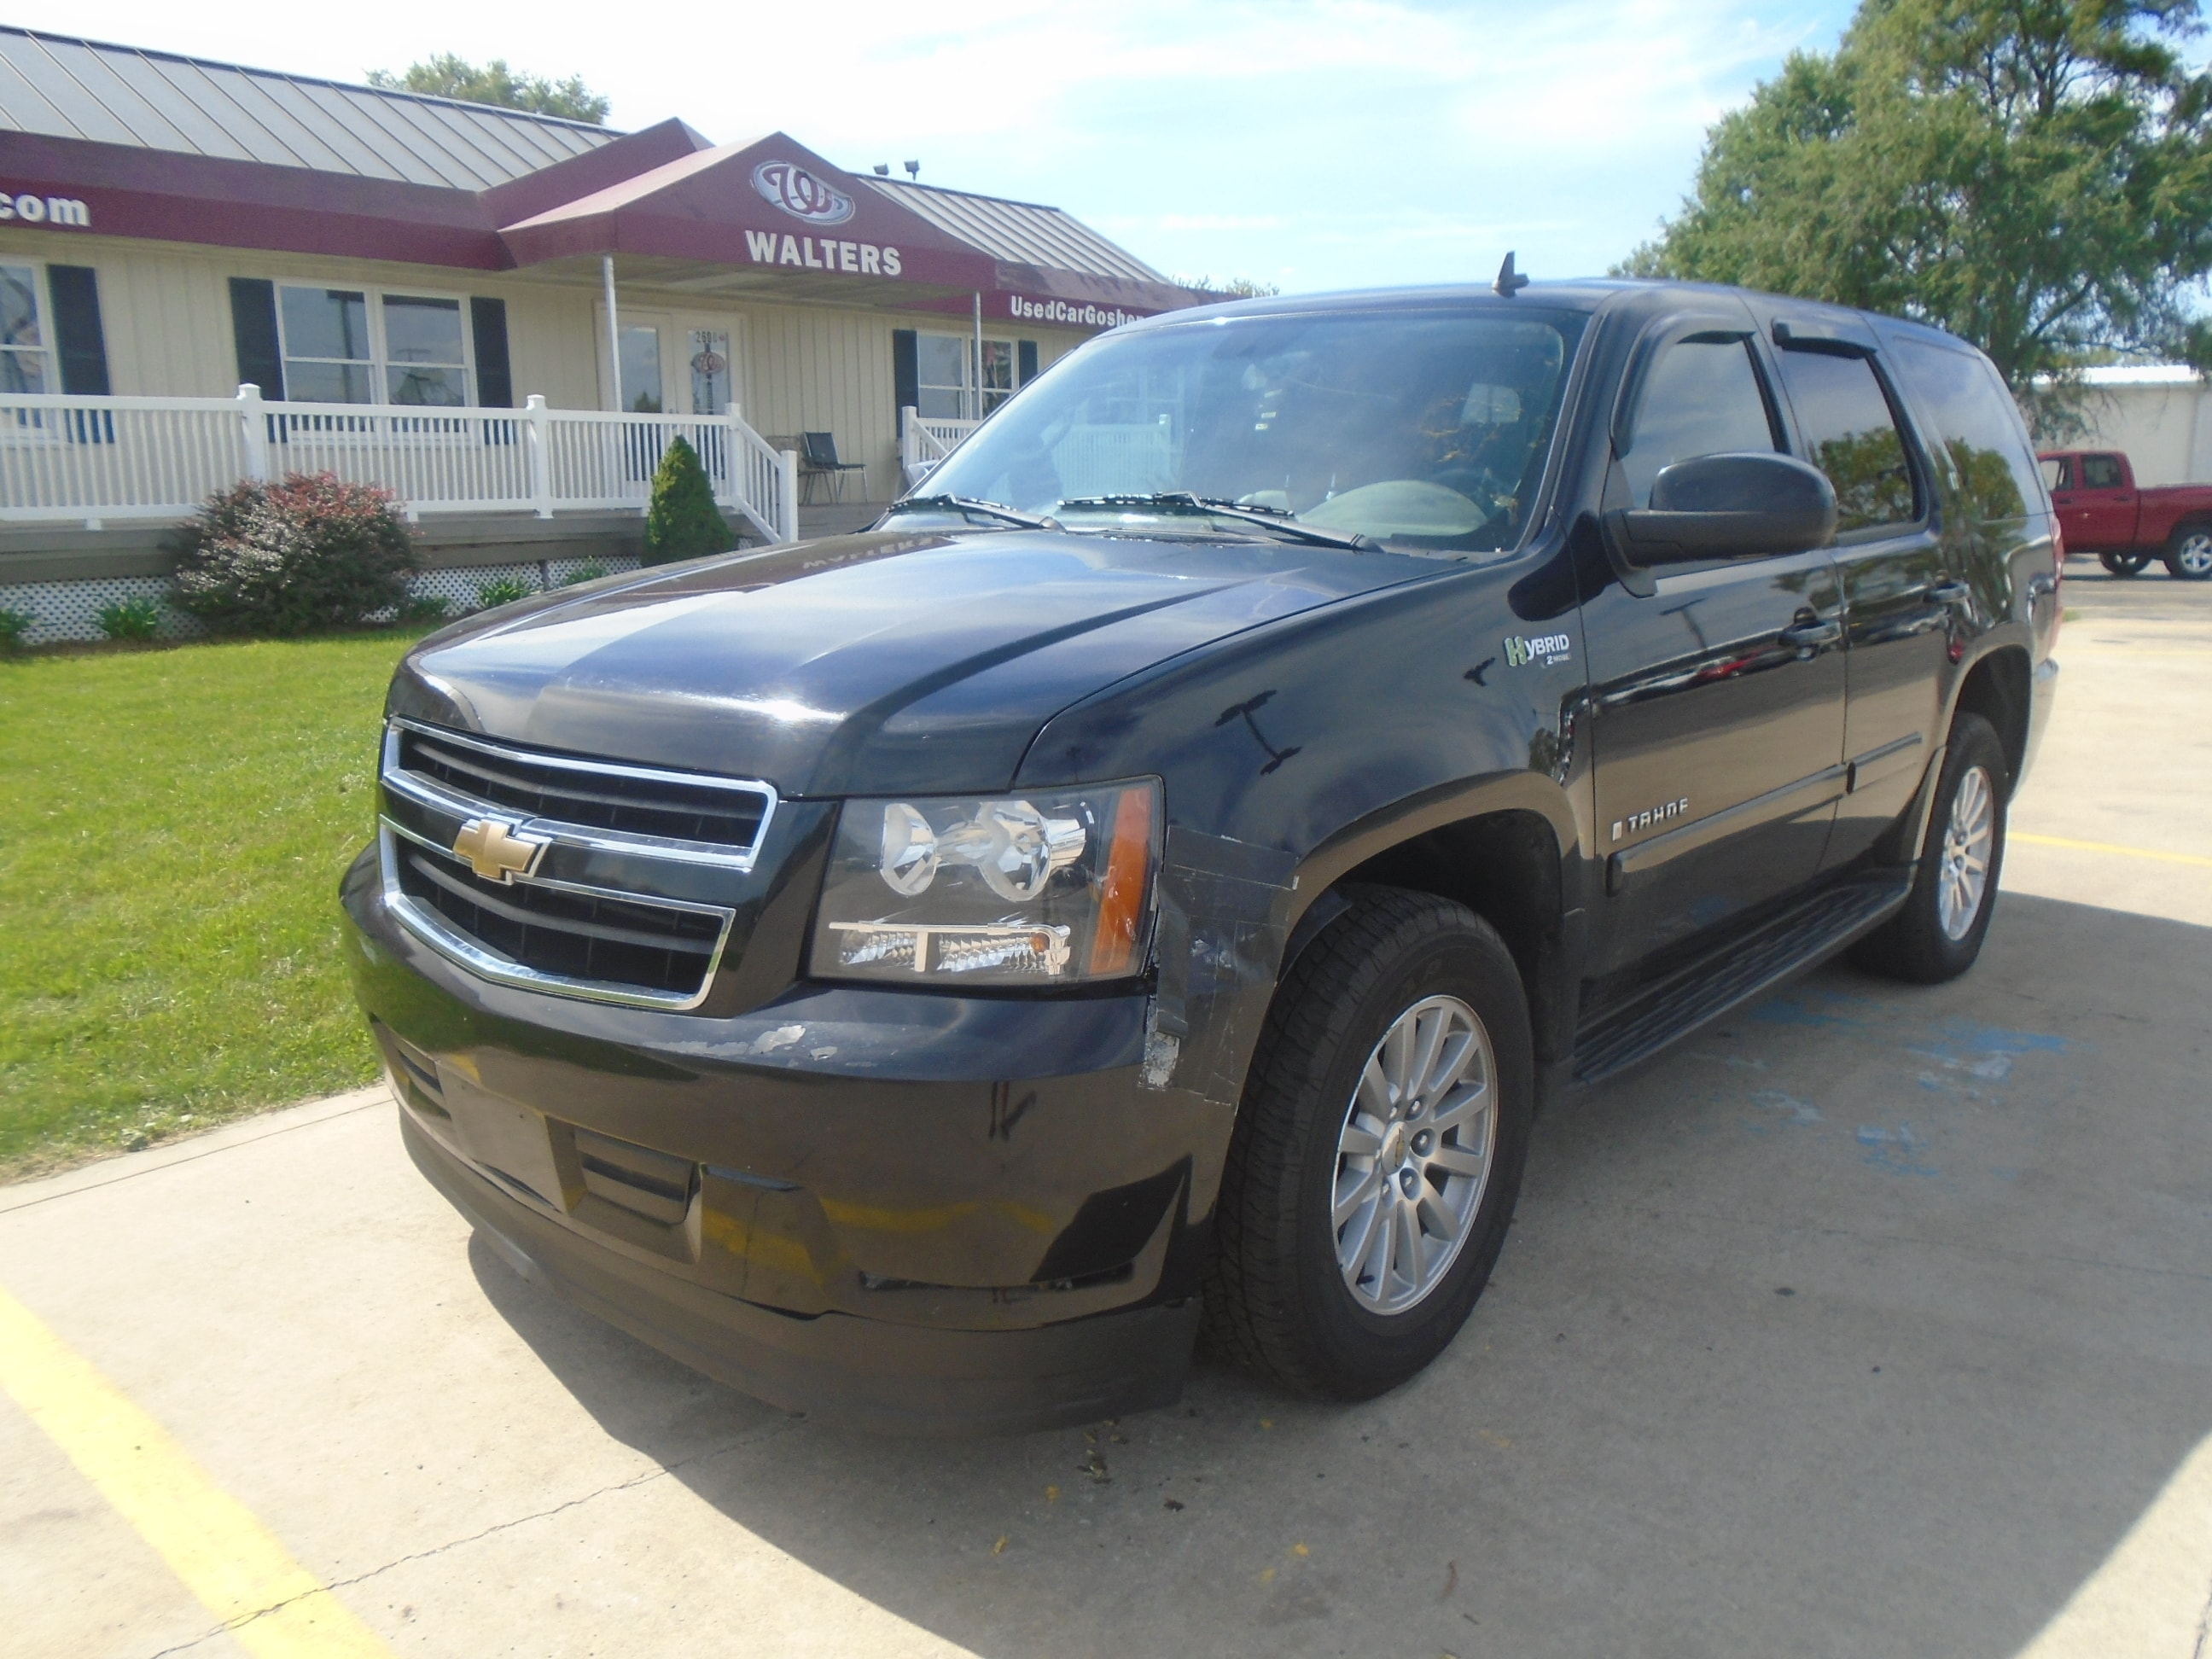 used 2008 chevrolet tahoe hybrid for sale goshen in elkhart south bend fort wayne indiana. Black Bedroom Furniture Sets. Home Design Ideas